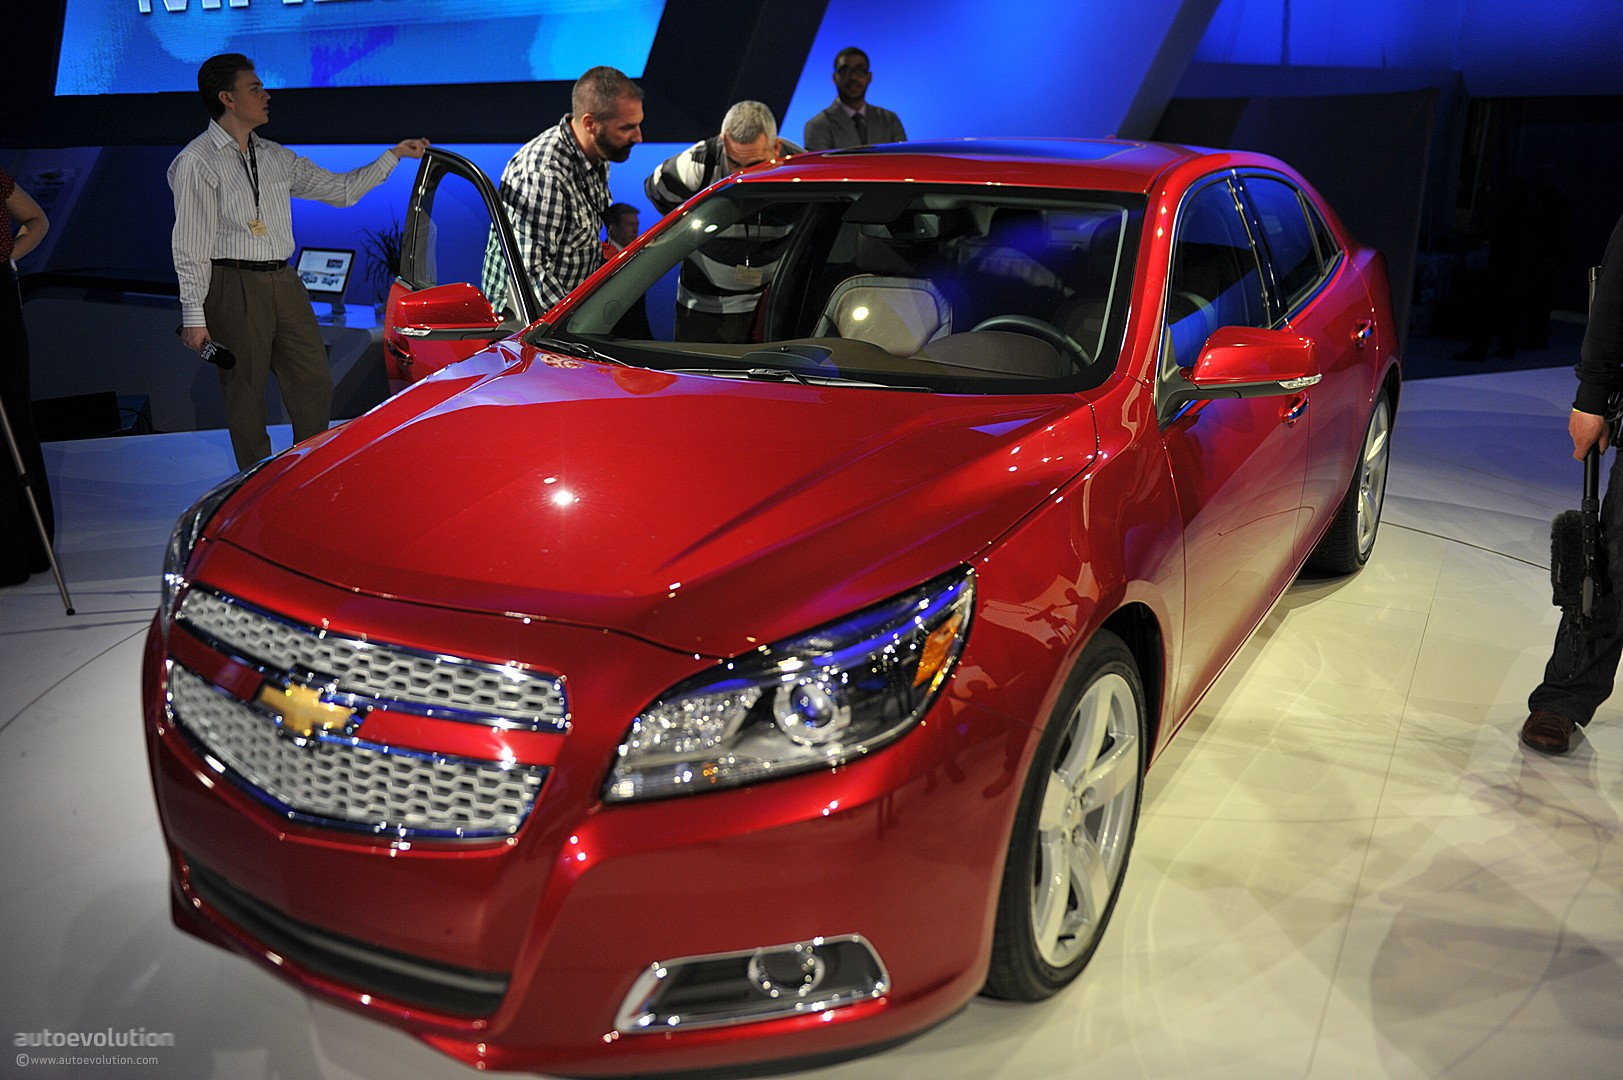 Europe Spec Chevrolet Malibu To Be Shown In Frankfurt Gets L Diesel on chevy 2013 chevrolet malibu eco engine